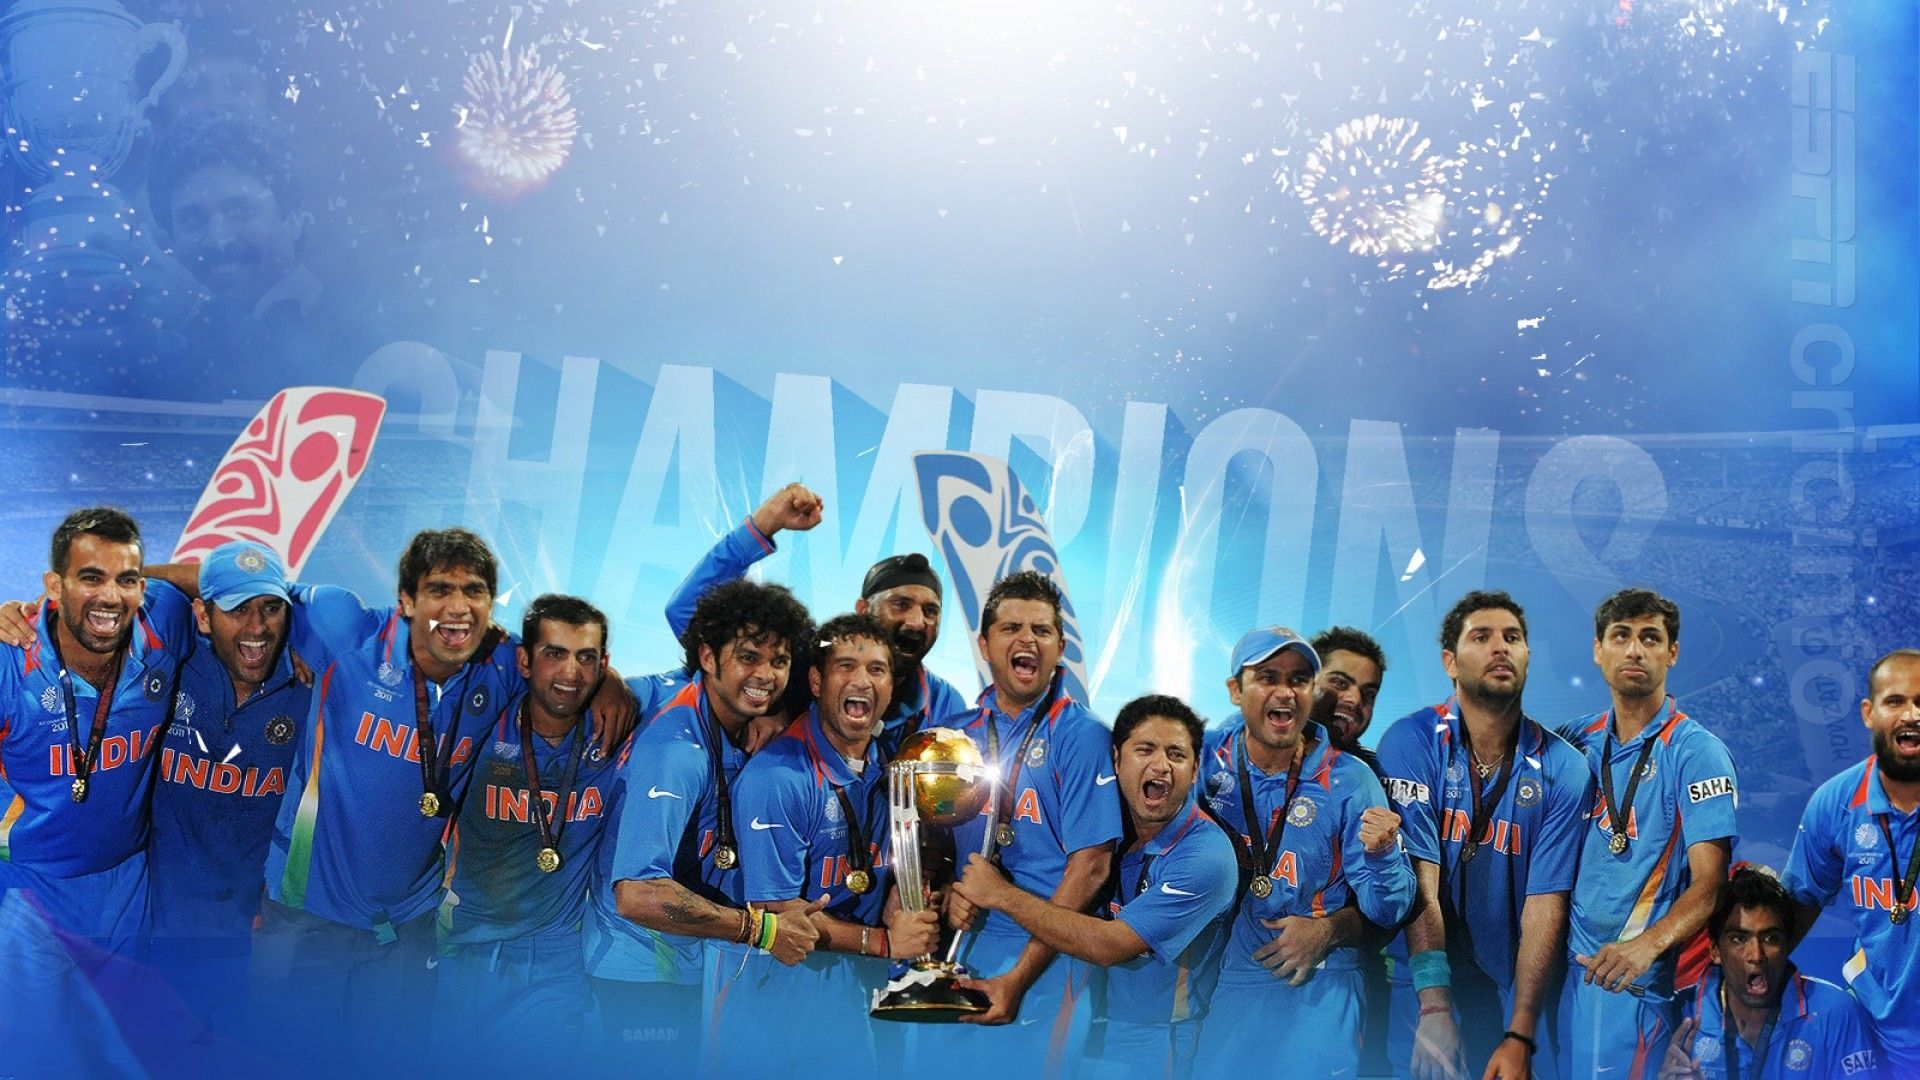 Ms Dhoni Team Wallpaper Frfee Download Hd 1920 1080 Team Wallpaper Cricket Wallpapers Cricket World Cup